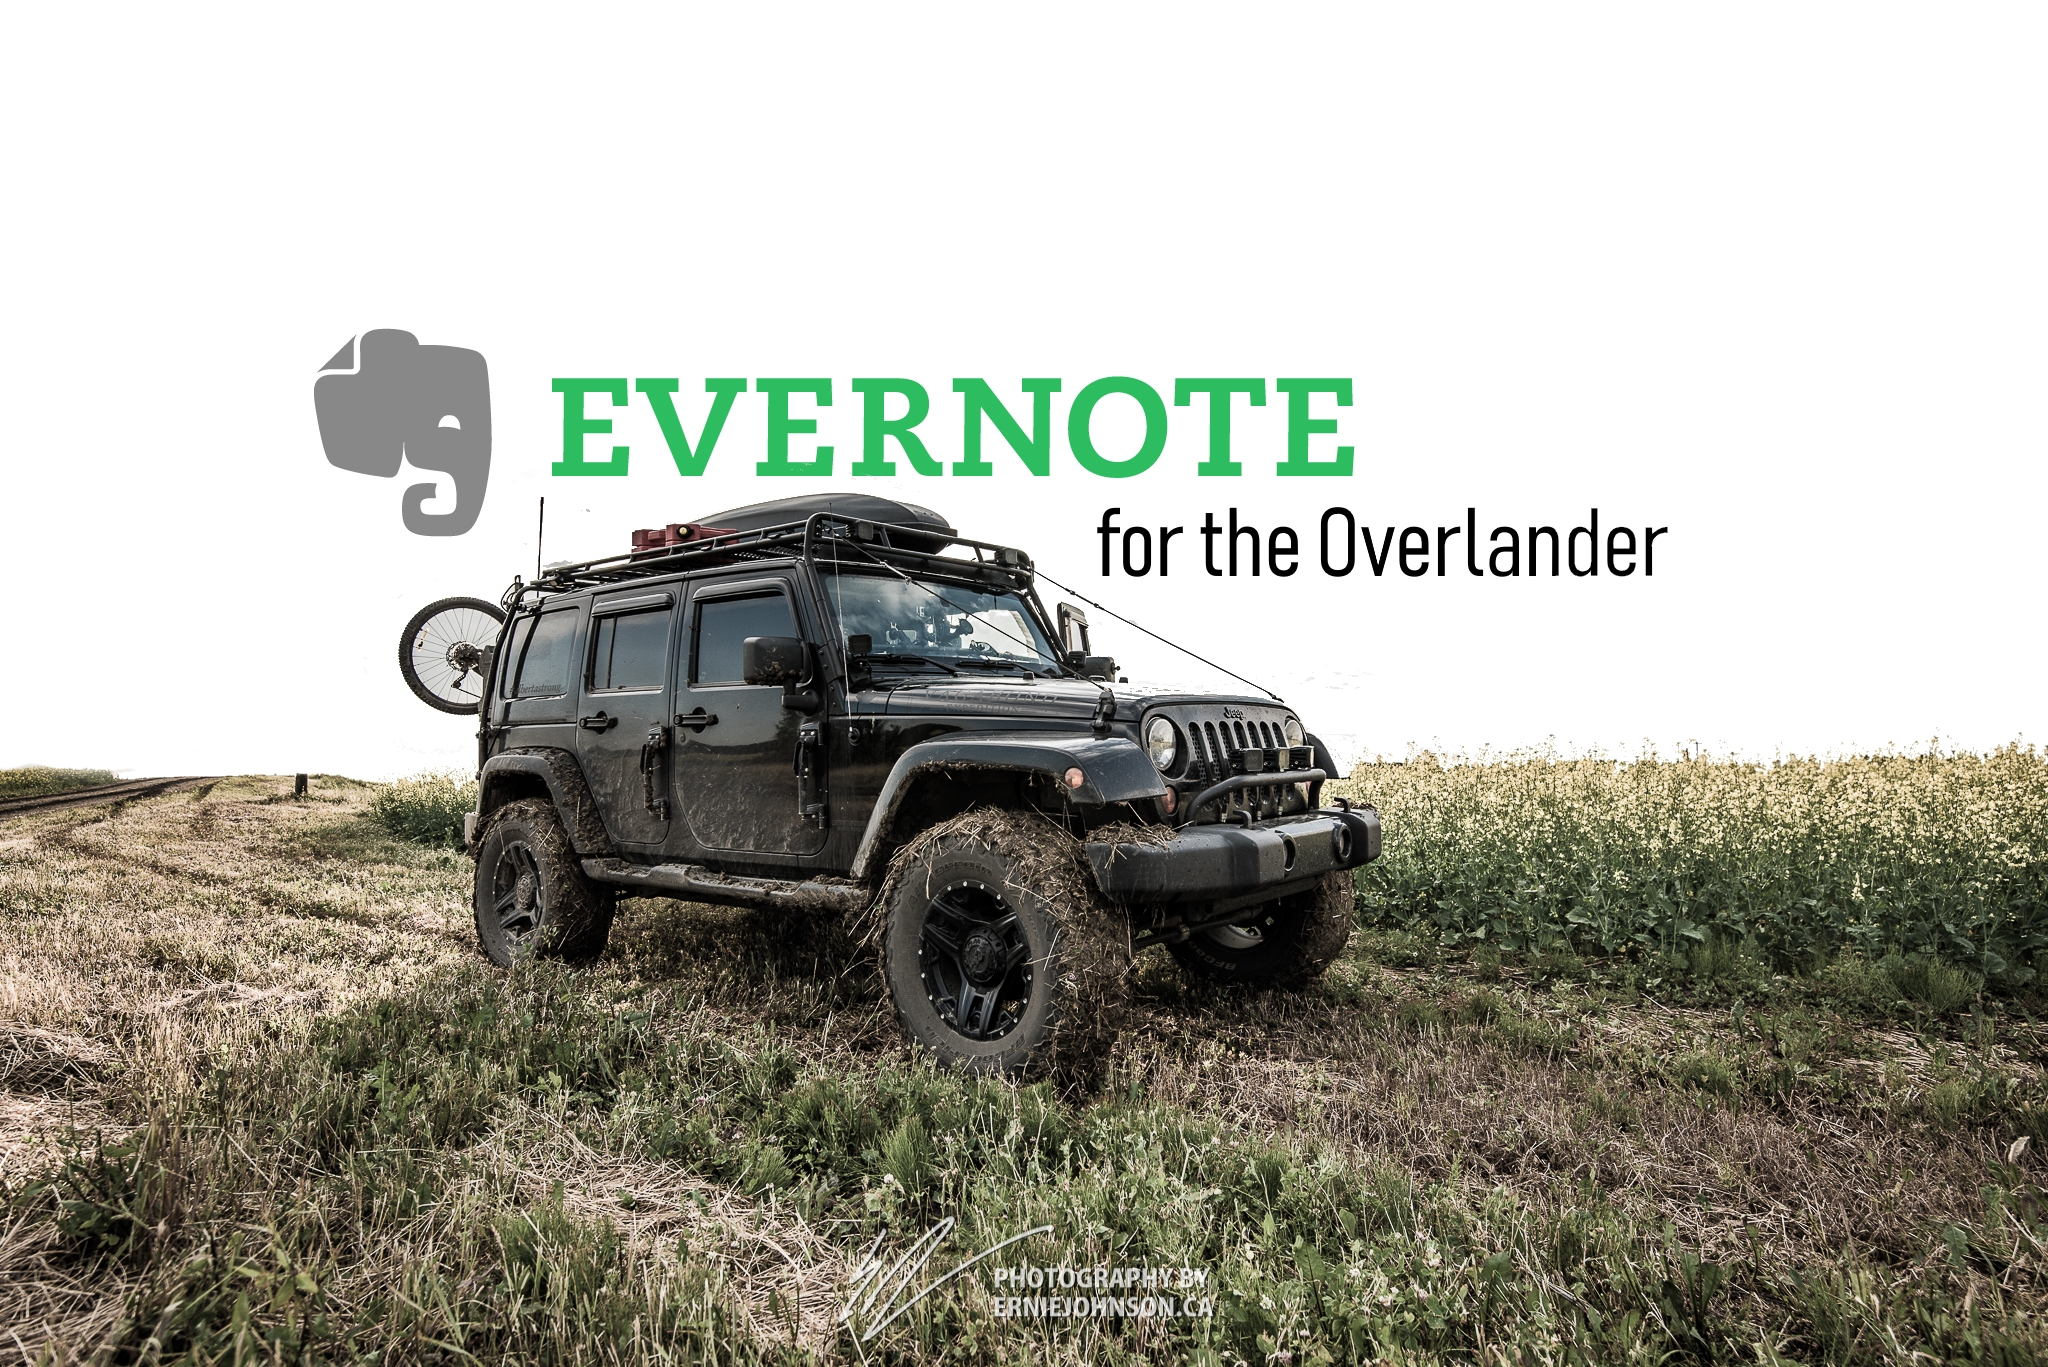 5 ways to begin Using Evernote as an Overlander